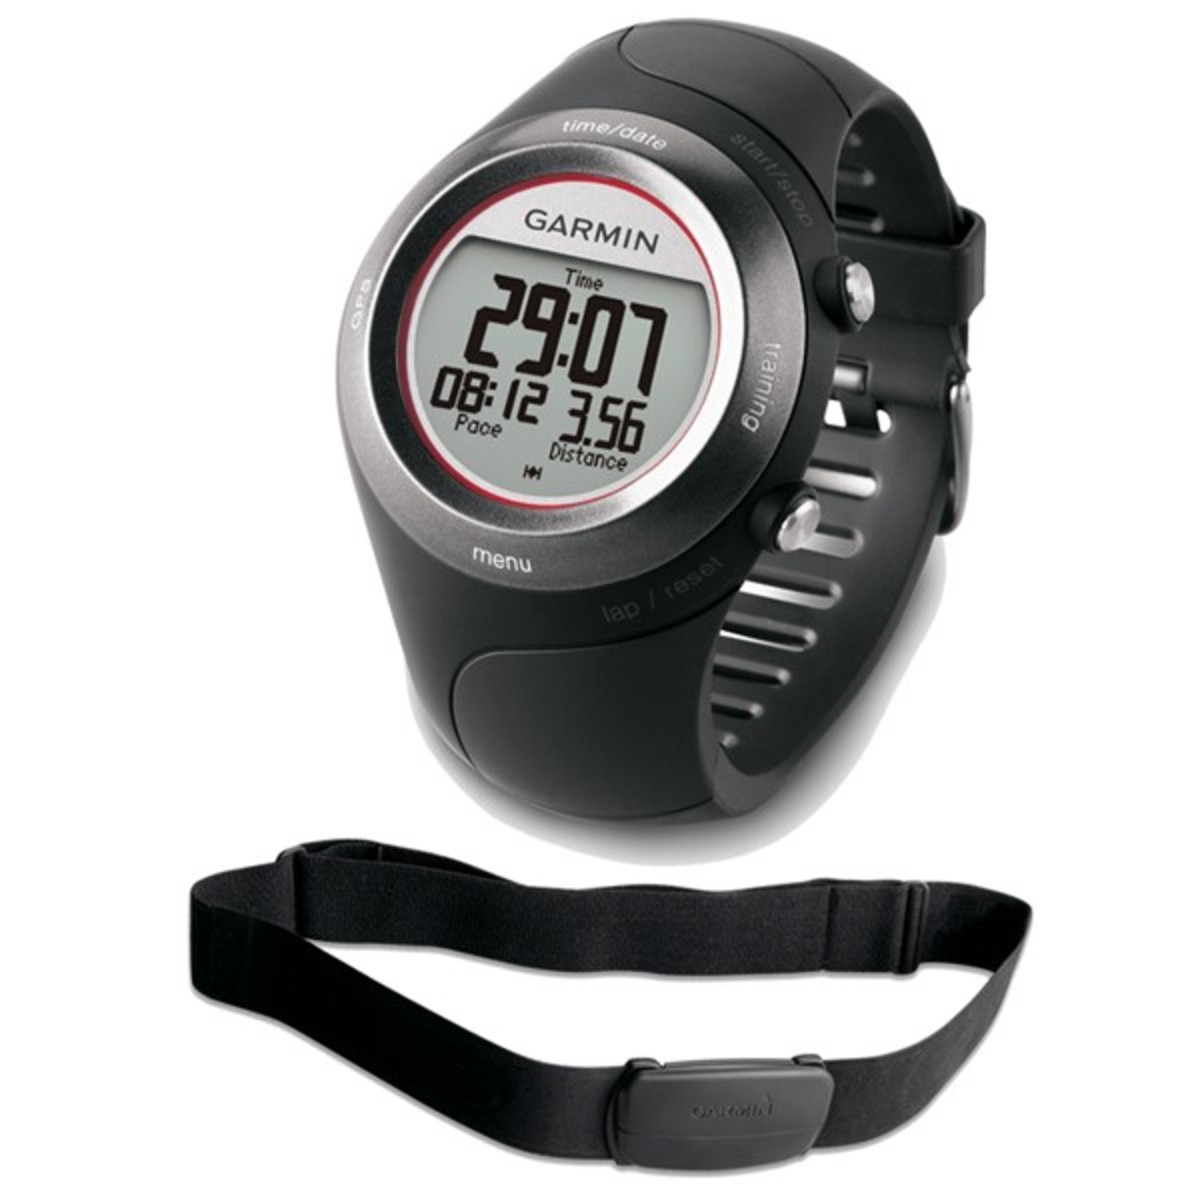 Forerunner 410 with heart rate monitor strap